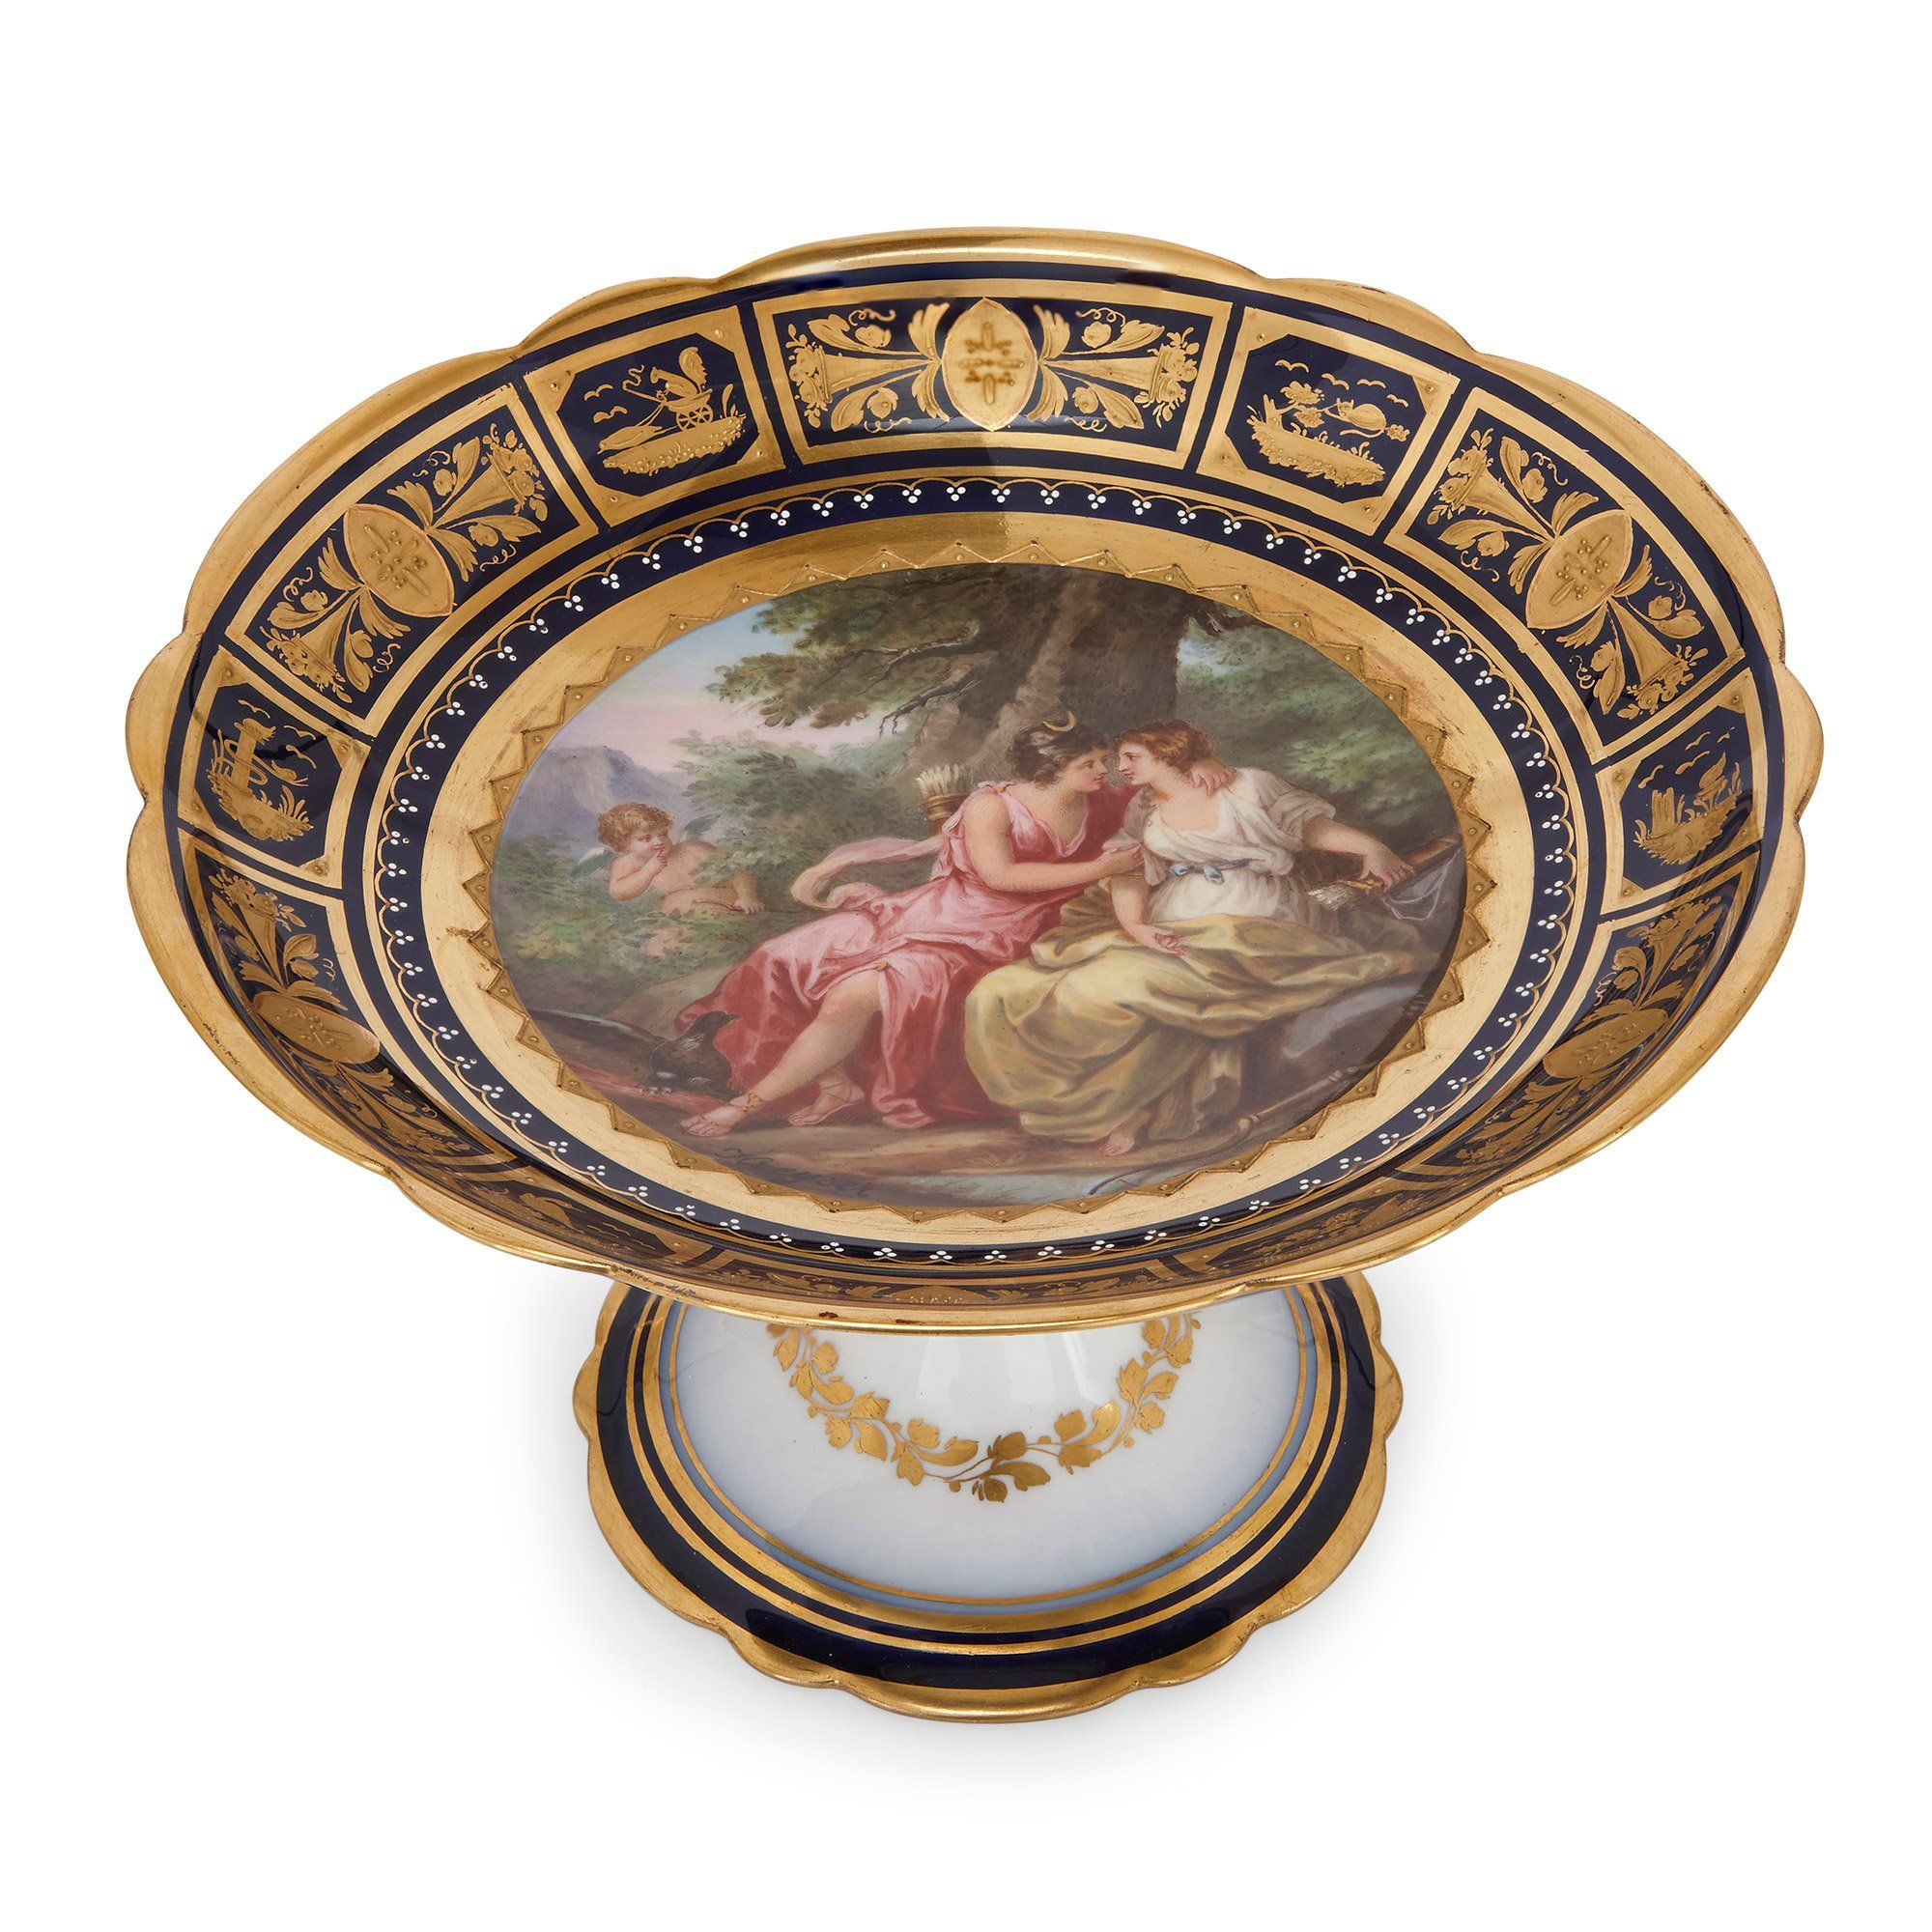 Porzellan Service Royal Vienna Porcelain Antique Dessert Service | Mayfair